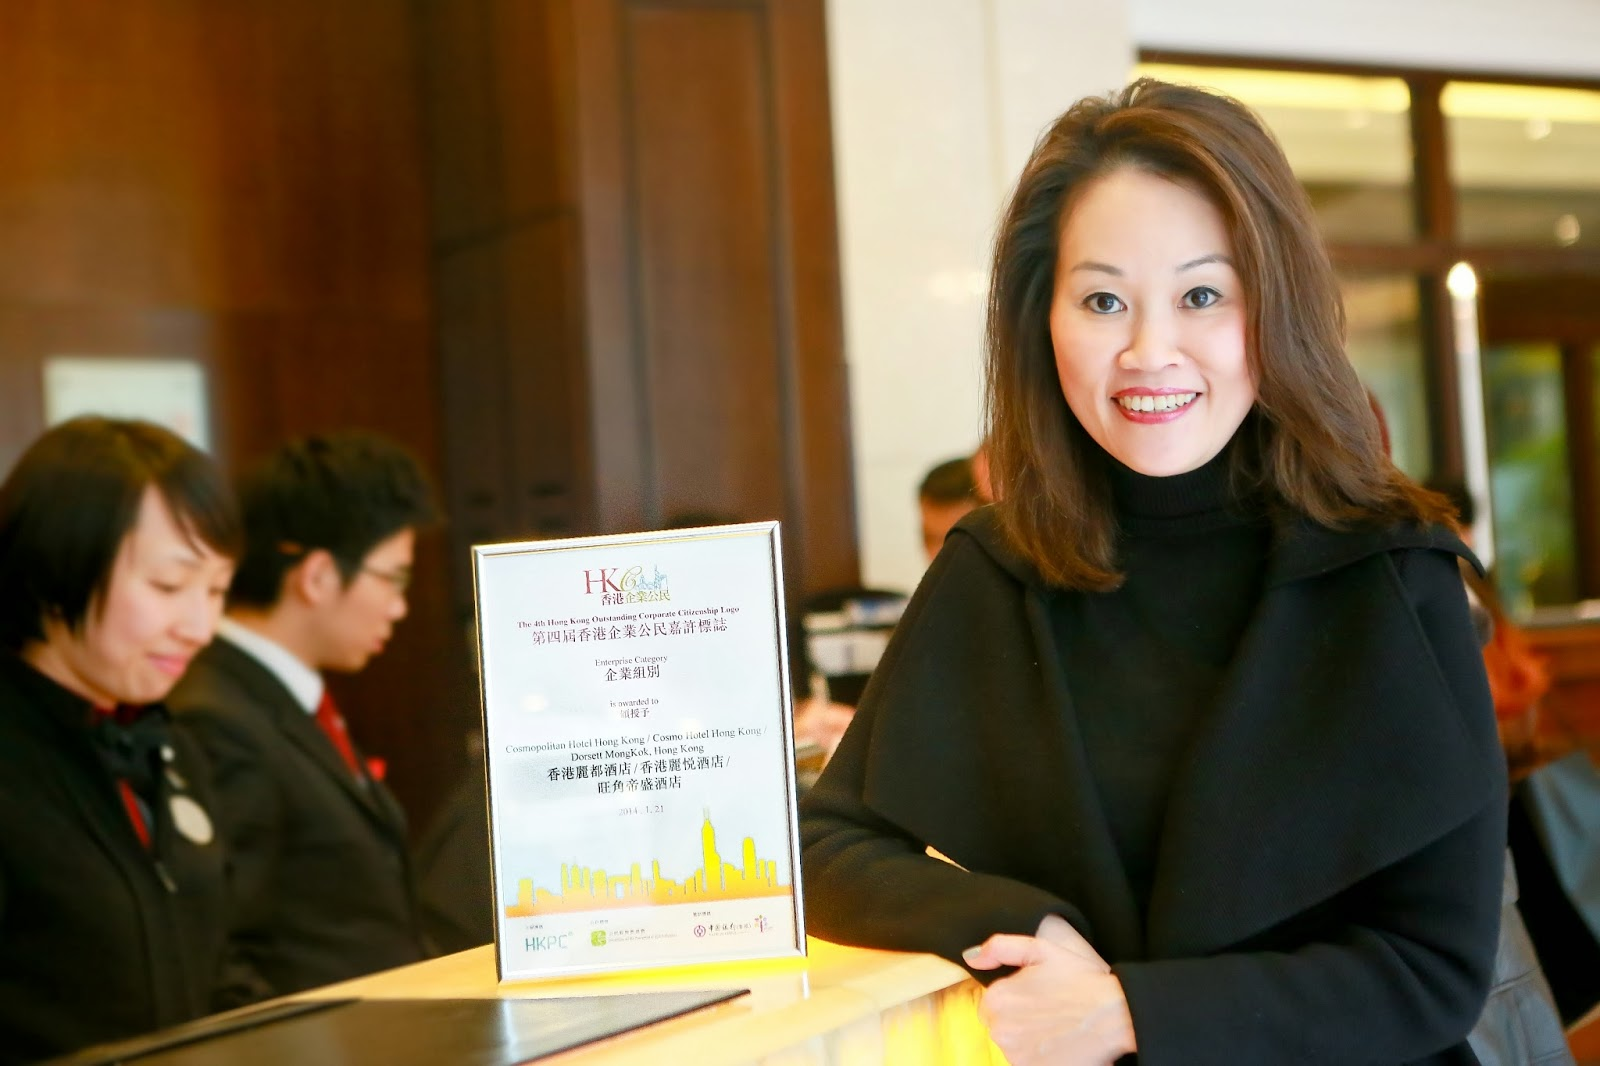 COSMOPOLITAN HOTEL, COSMO HOTEL AND DORSETT MONGKOK, HONG KONG HONOURED WITH CORPORATE CITIZENSHIP LOGO AWARD 2014